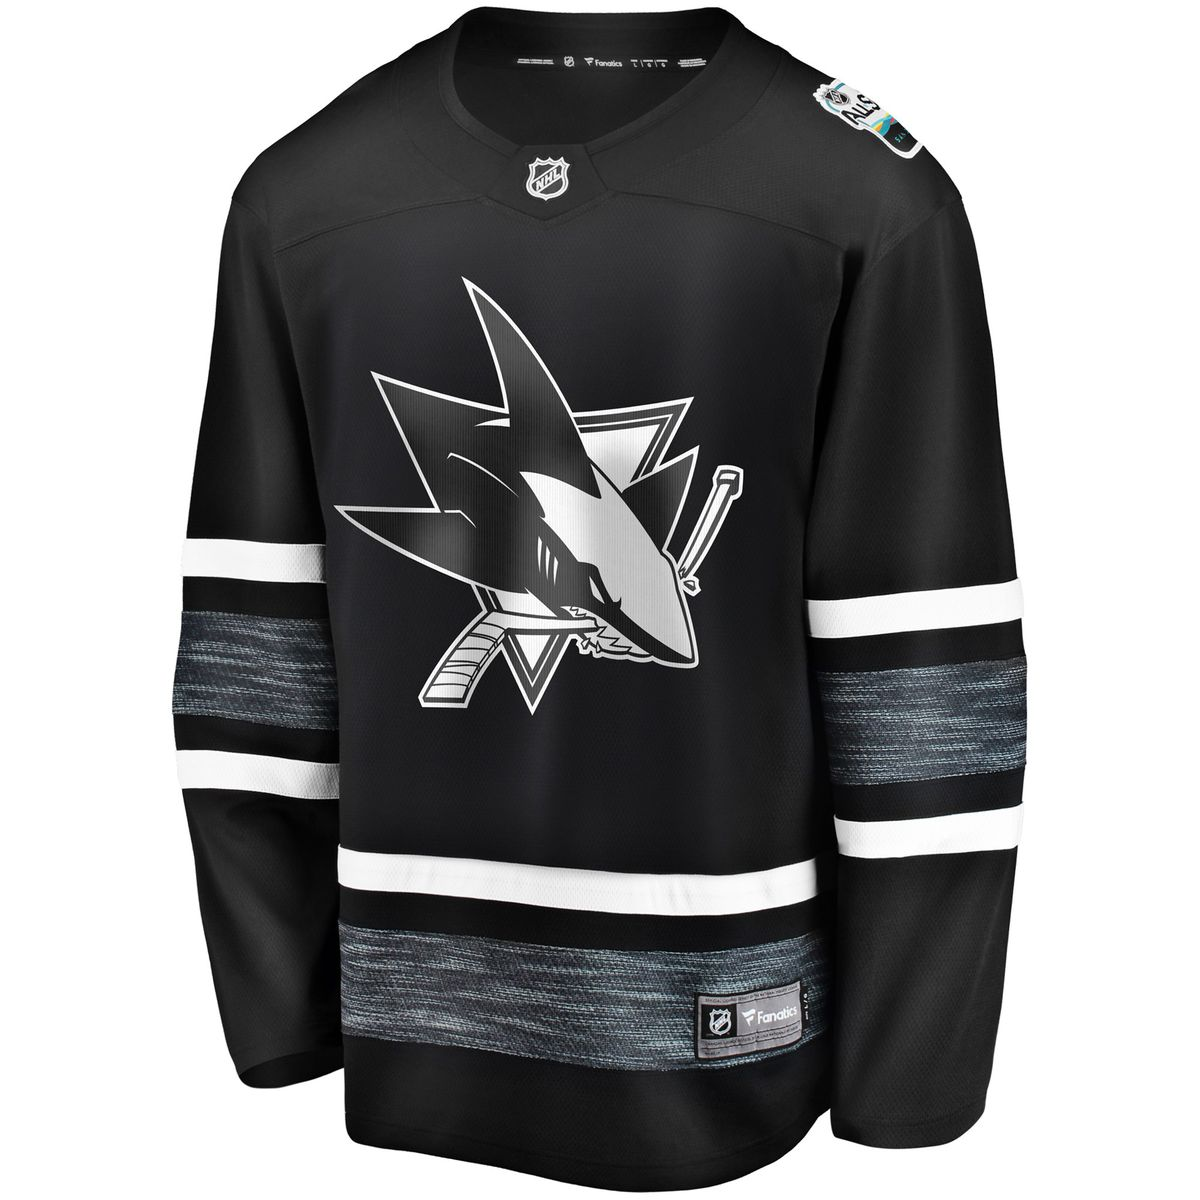 San Jose Sharks Black 2019 NHL All-Star Game Replica Jersey for  139.99  NHLShop.com c2e12c6d6